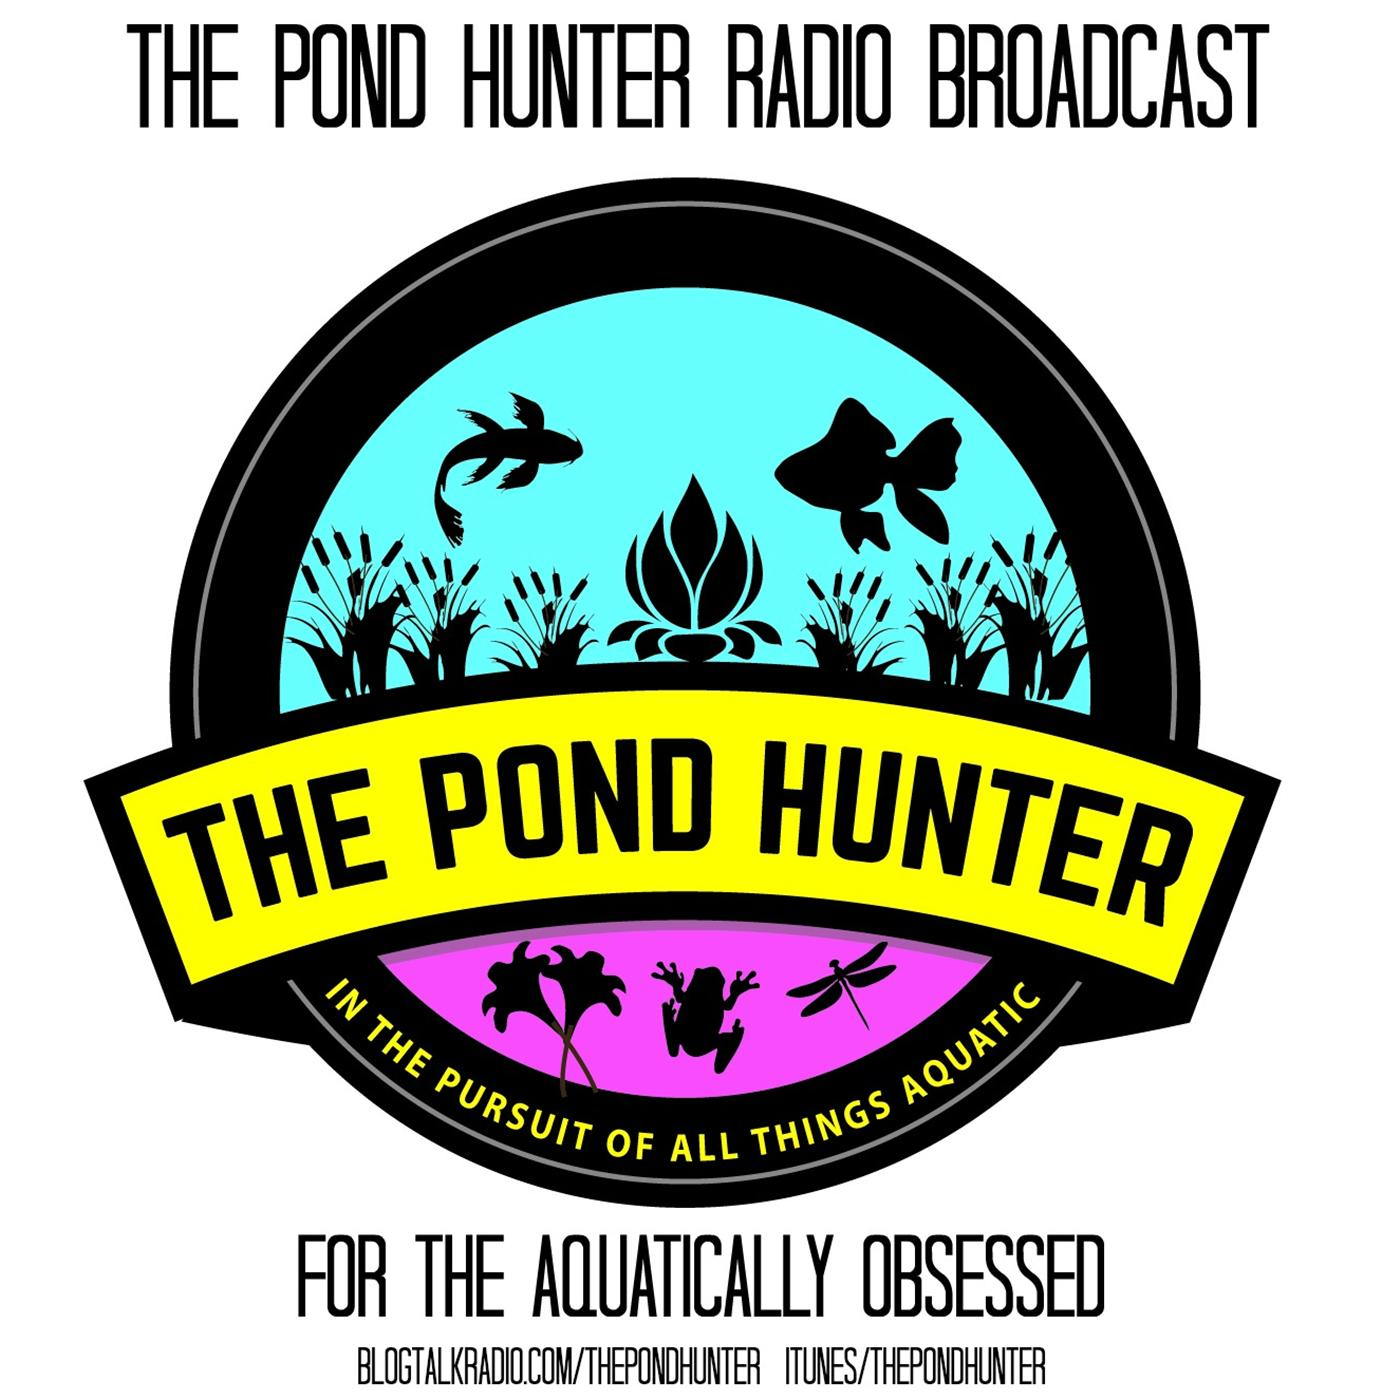 The Pond Hunter Radio Broadcast